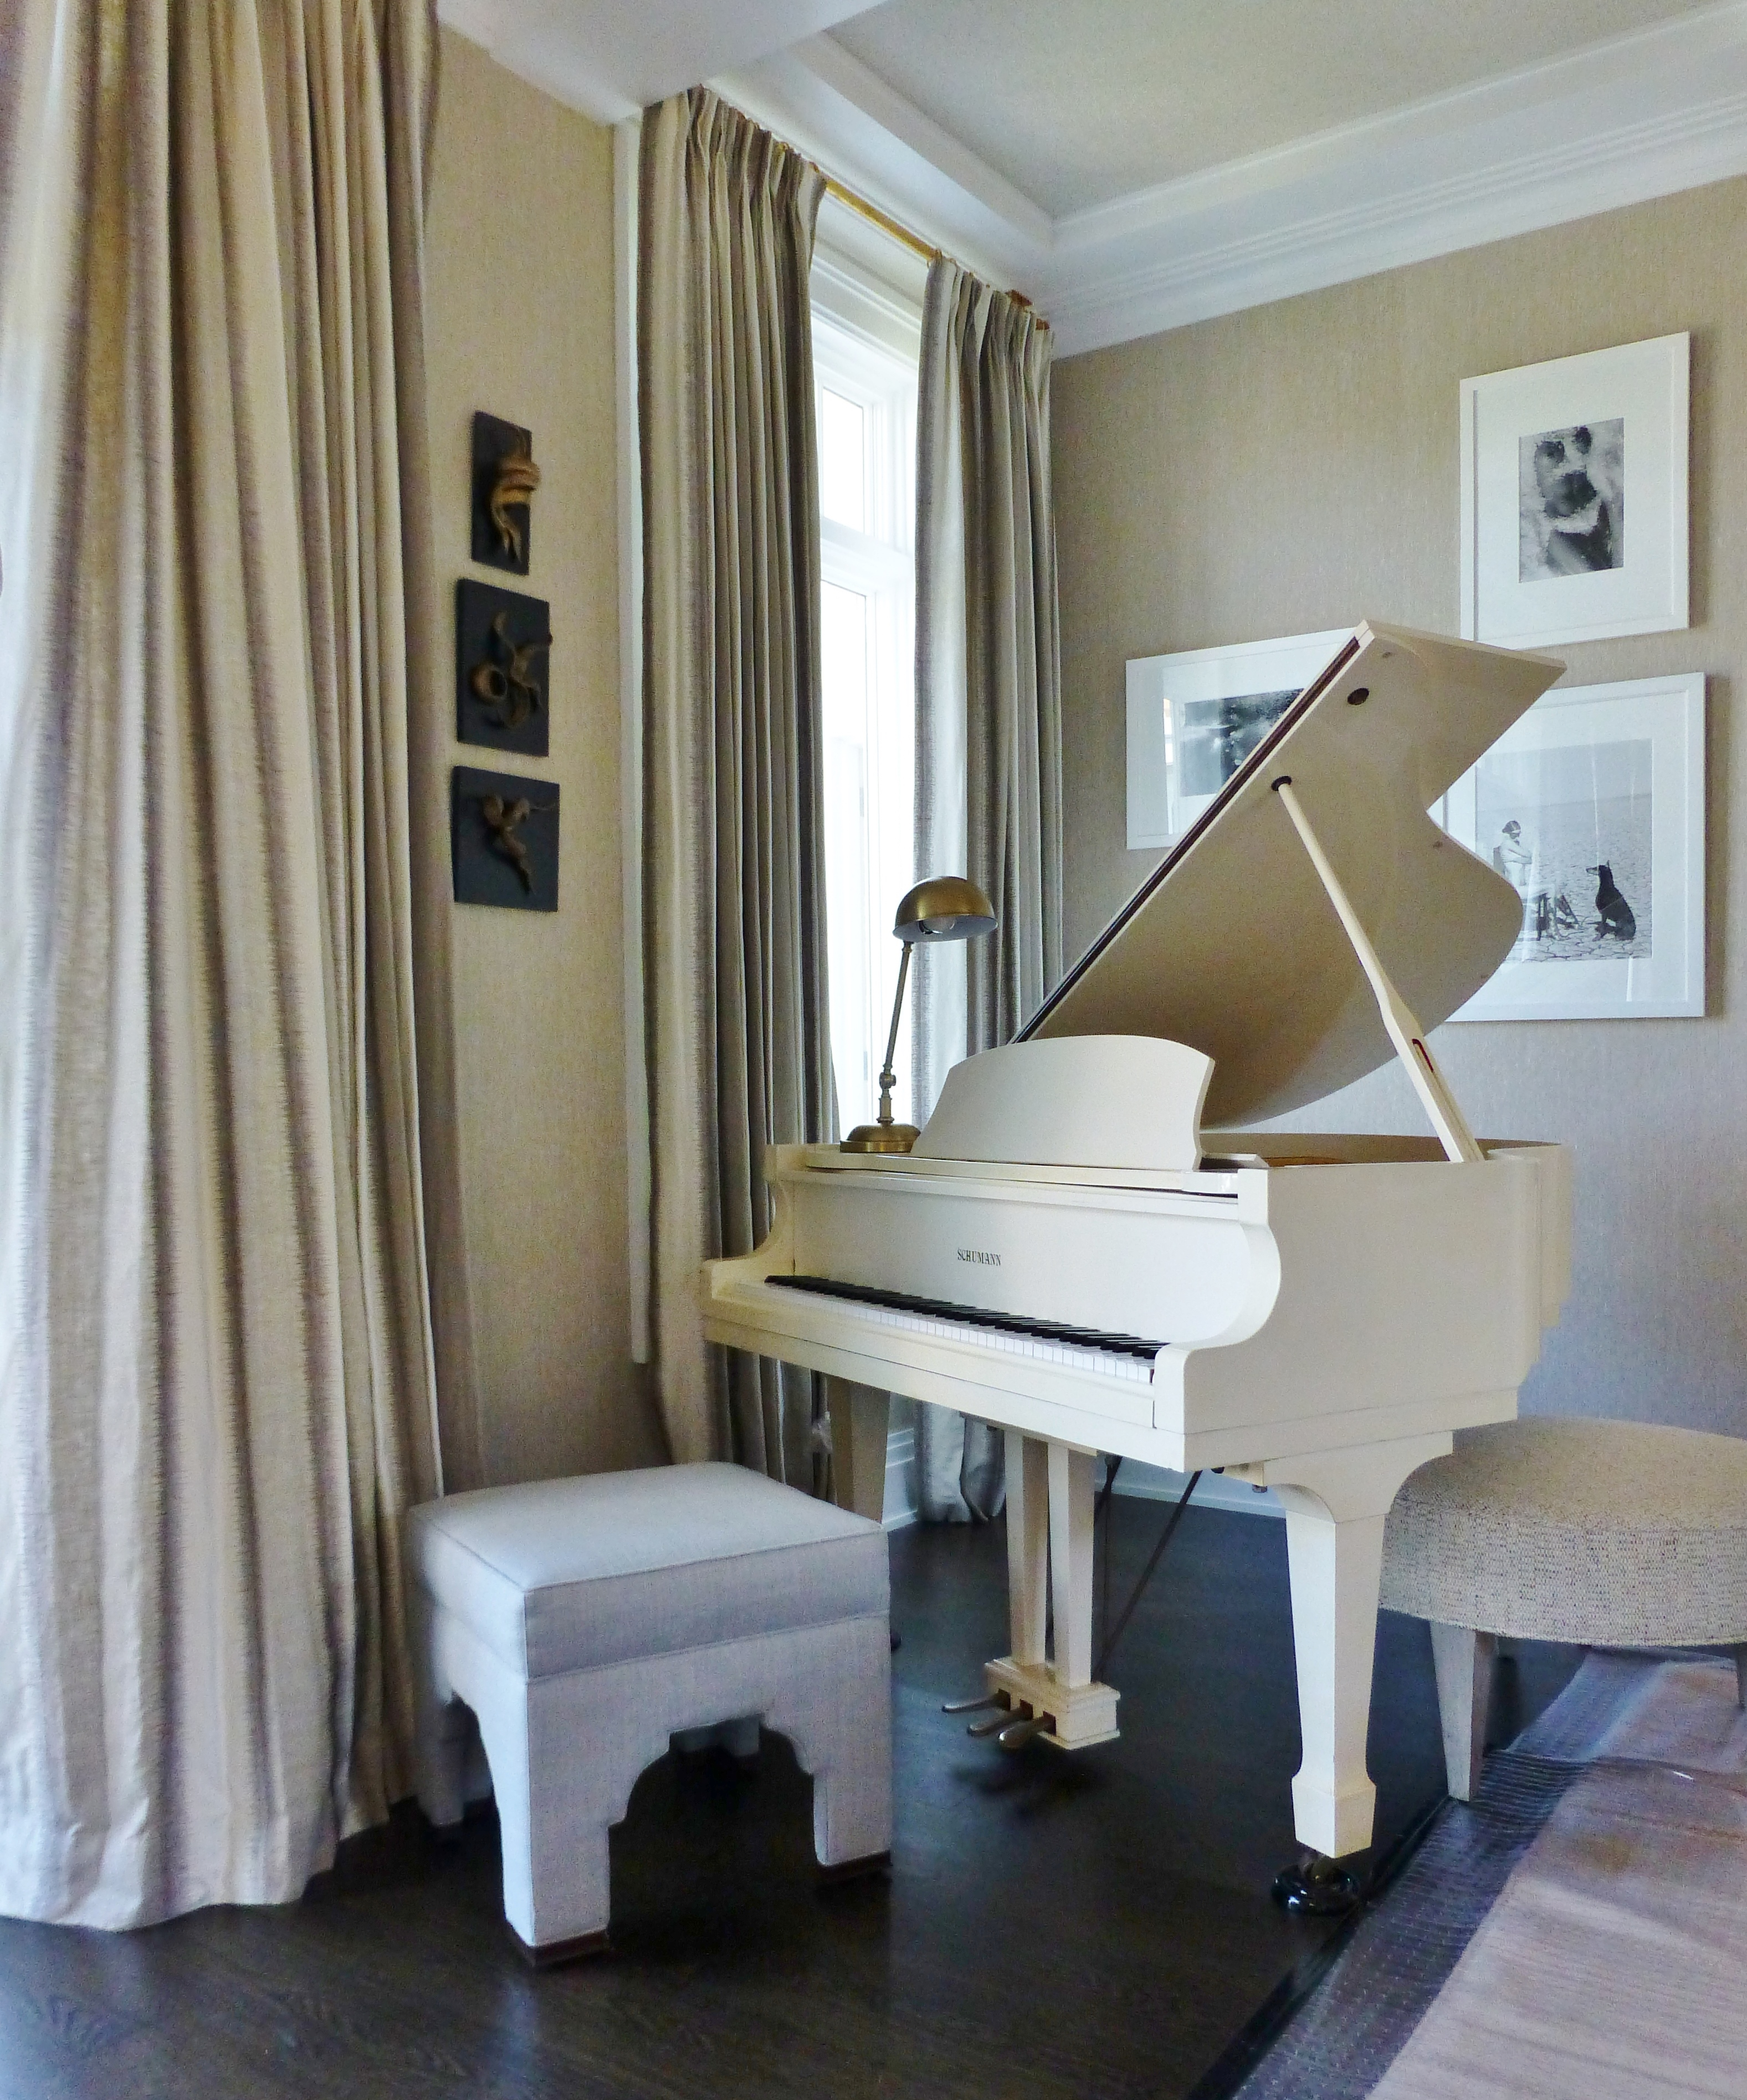 Where To Put A Baby Grand Piano In A Room